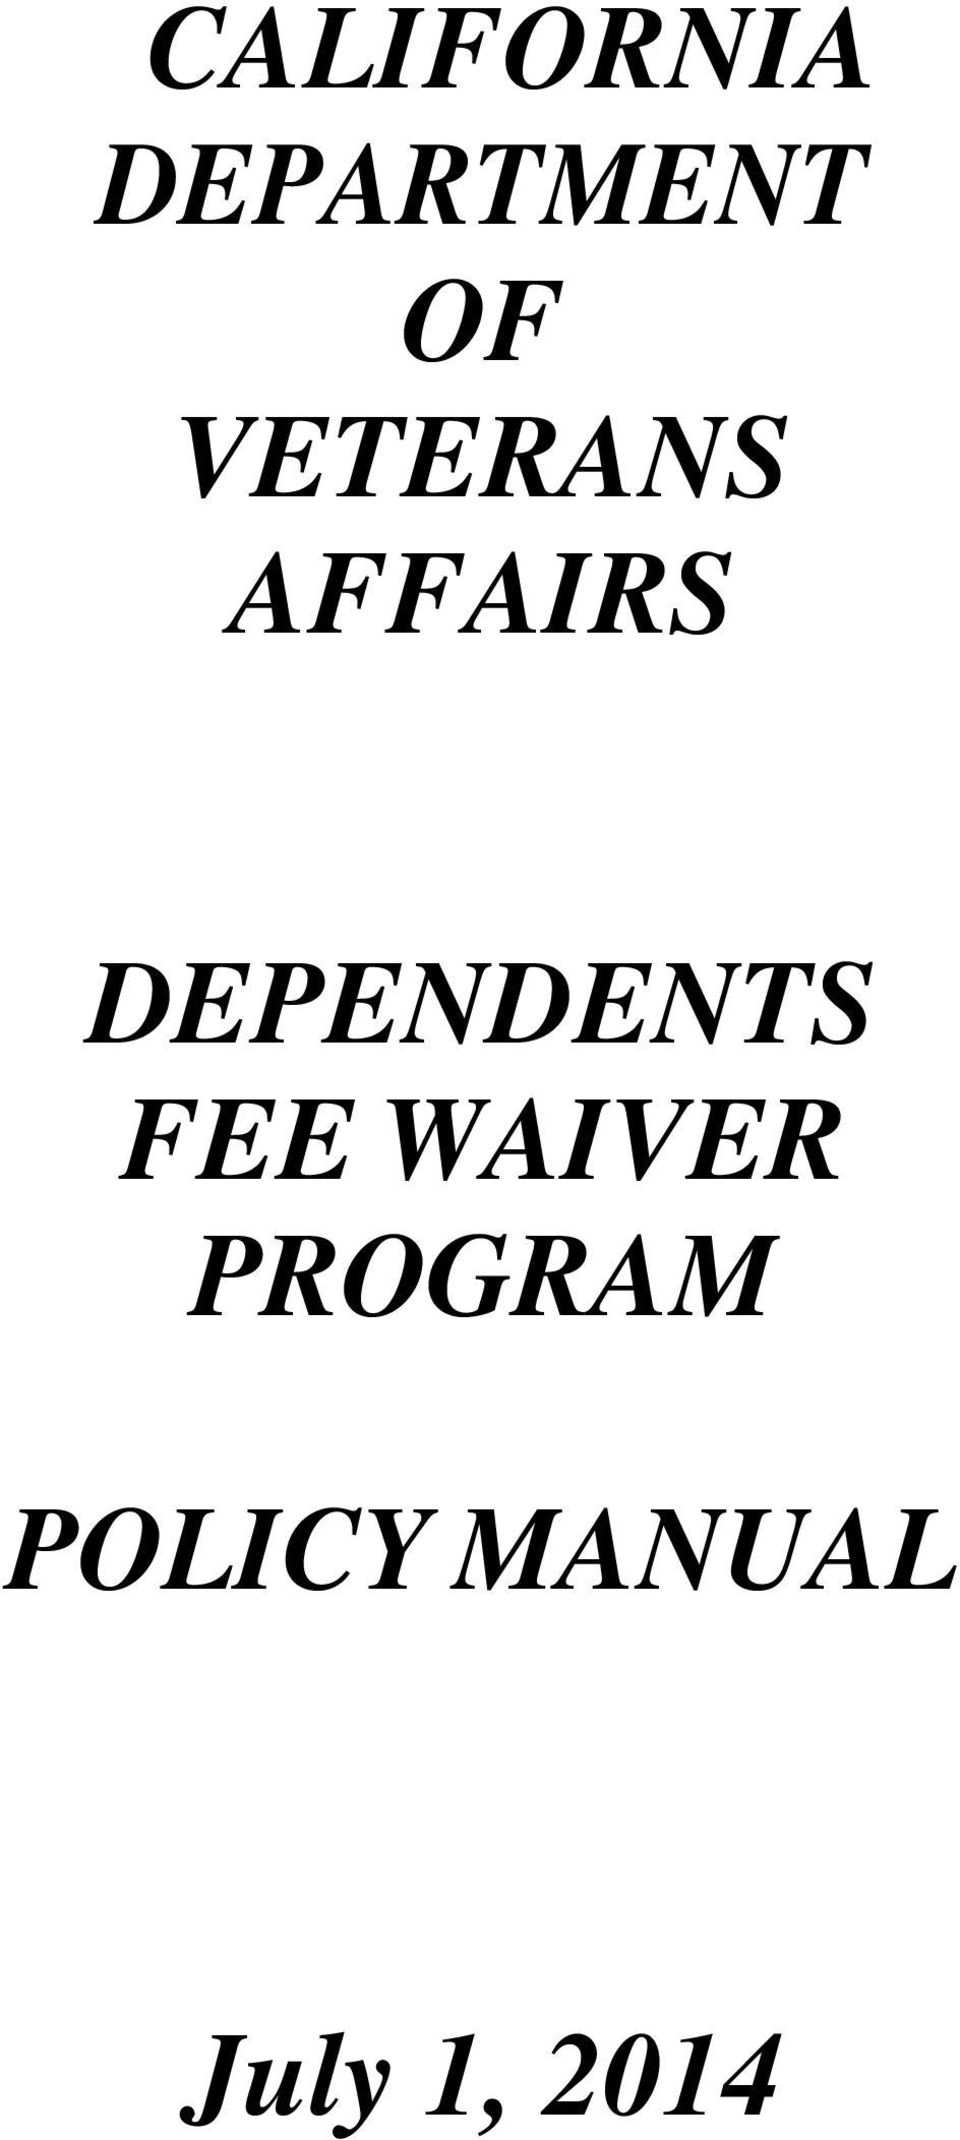 DEPENDENTS FEE WAIVER